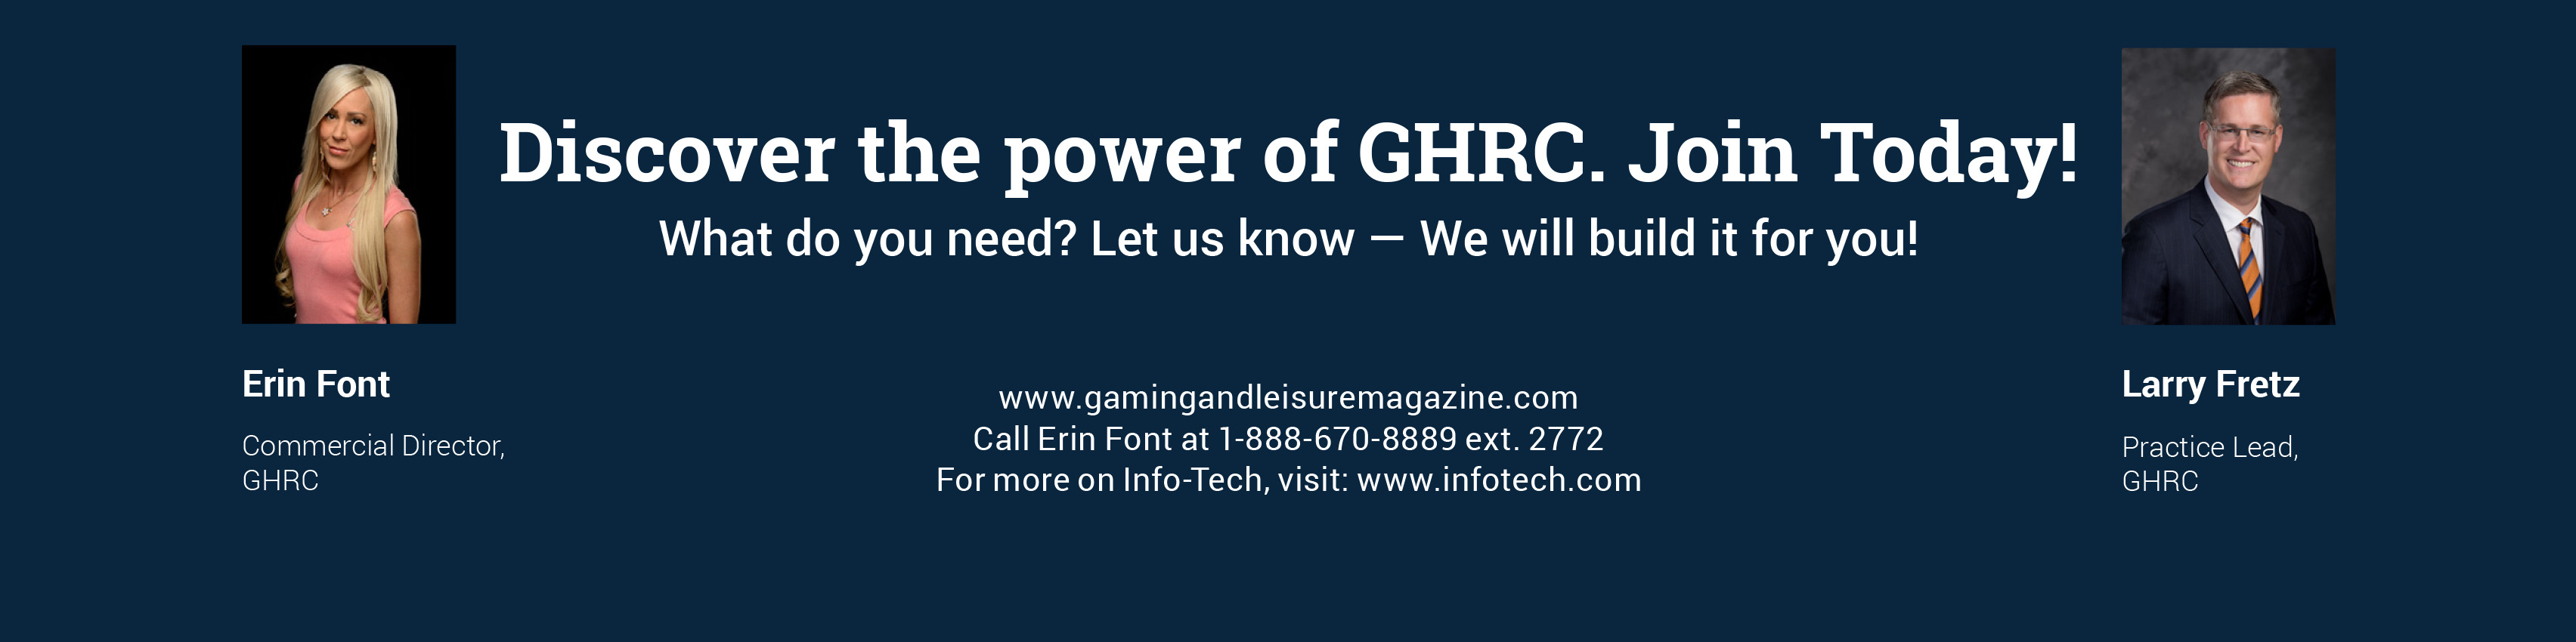 ghrc-call-to-action